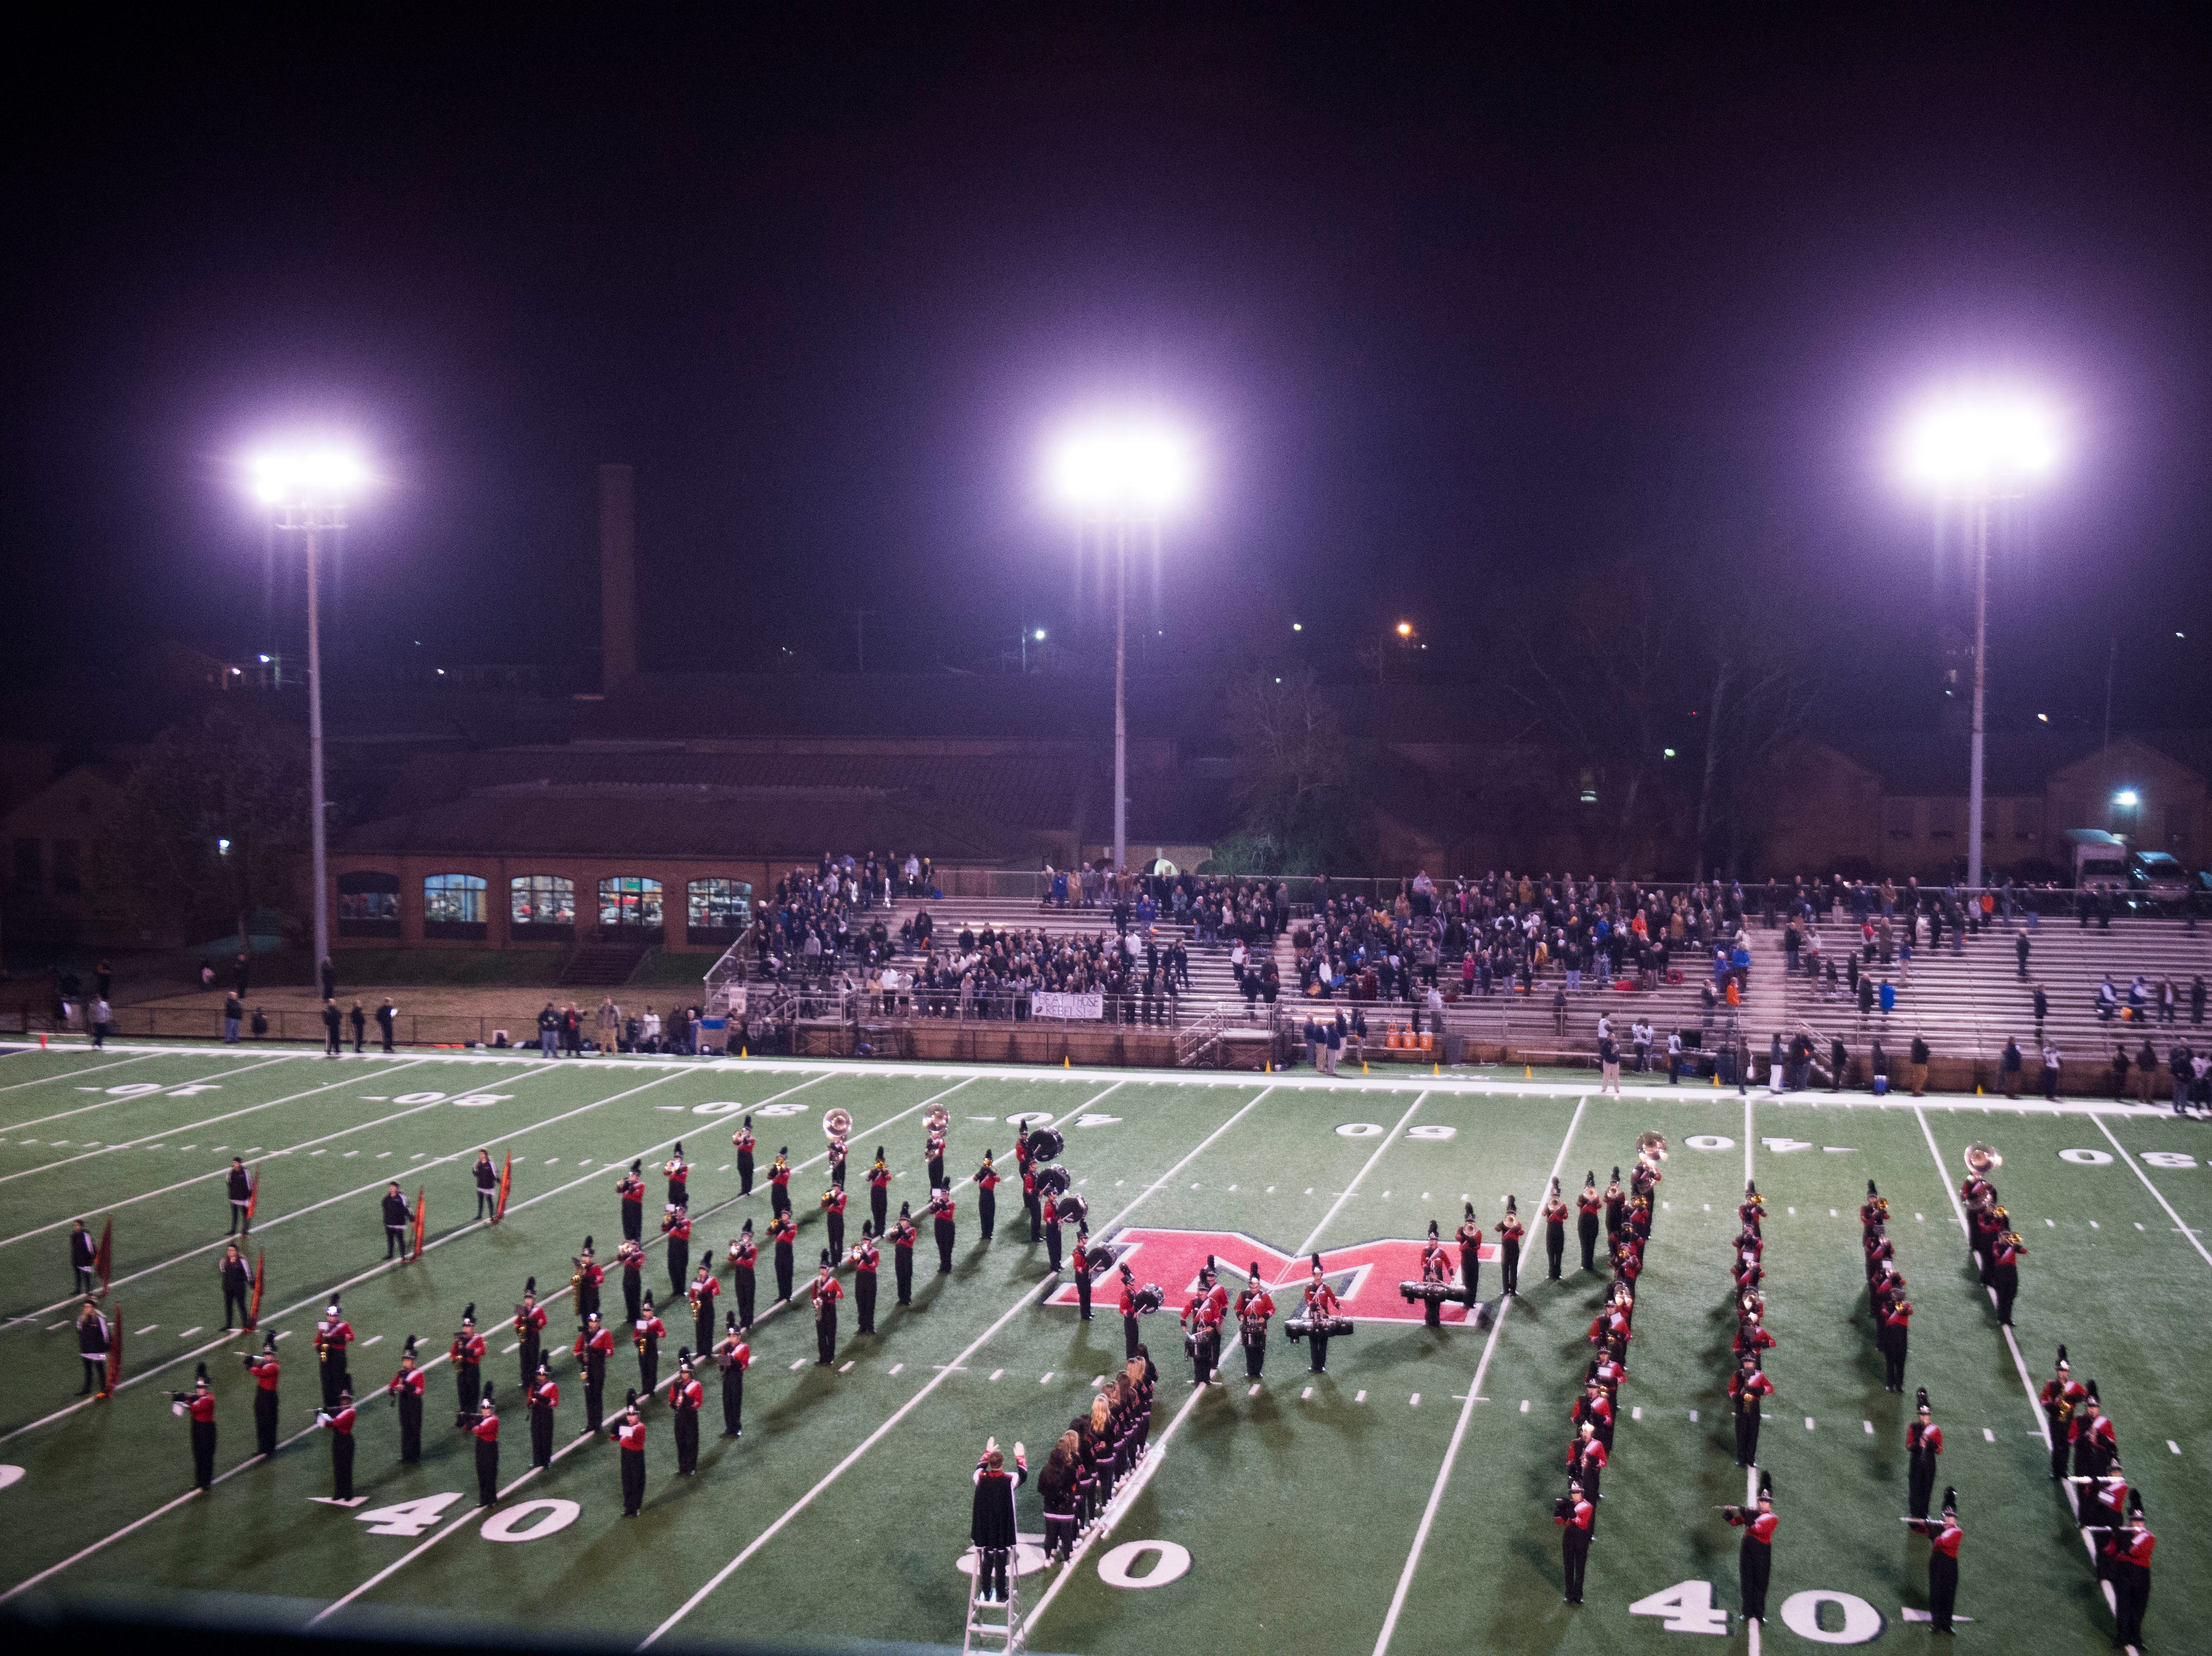 The Maryville band stands on the field before a game between Maryville and Farragut at Maryville Friday, Nov. 16, 2018.